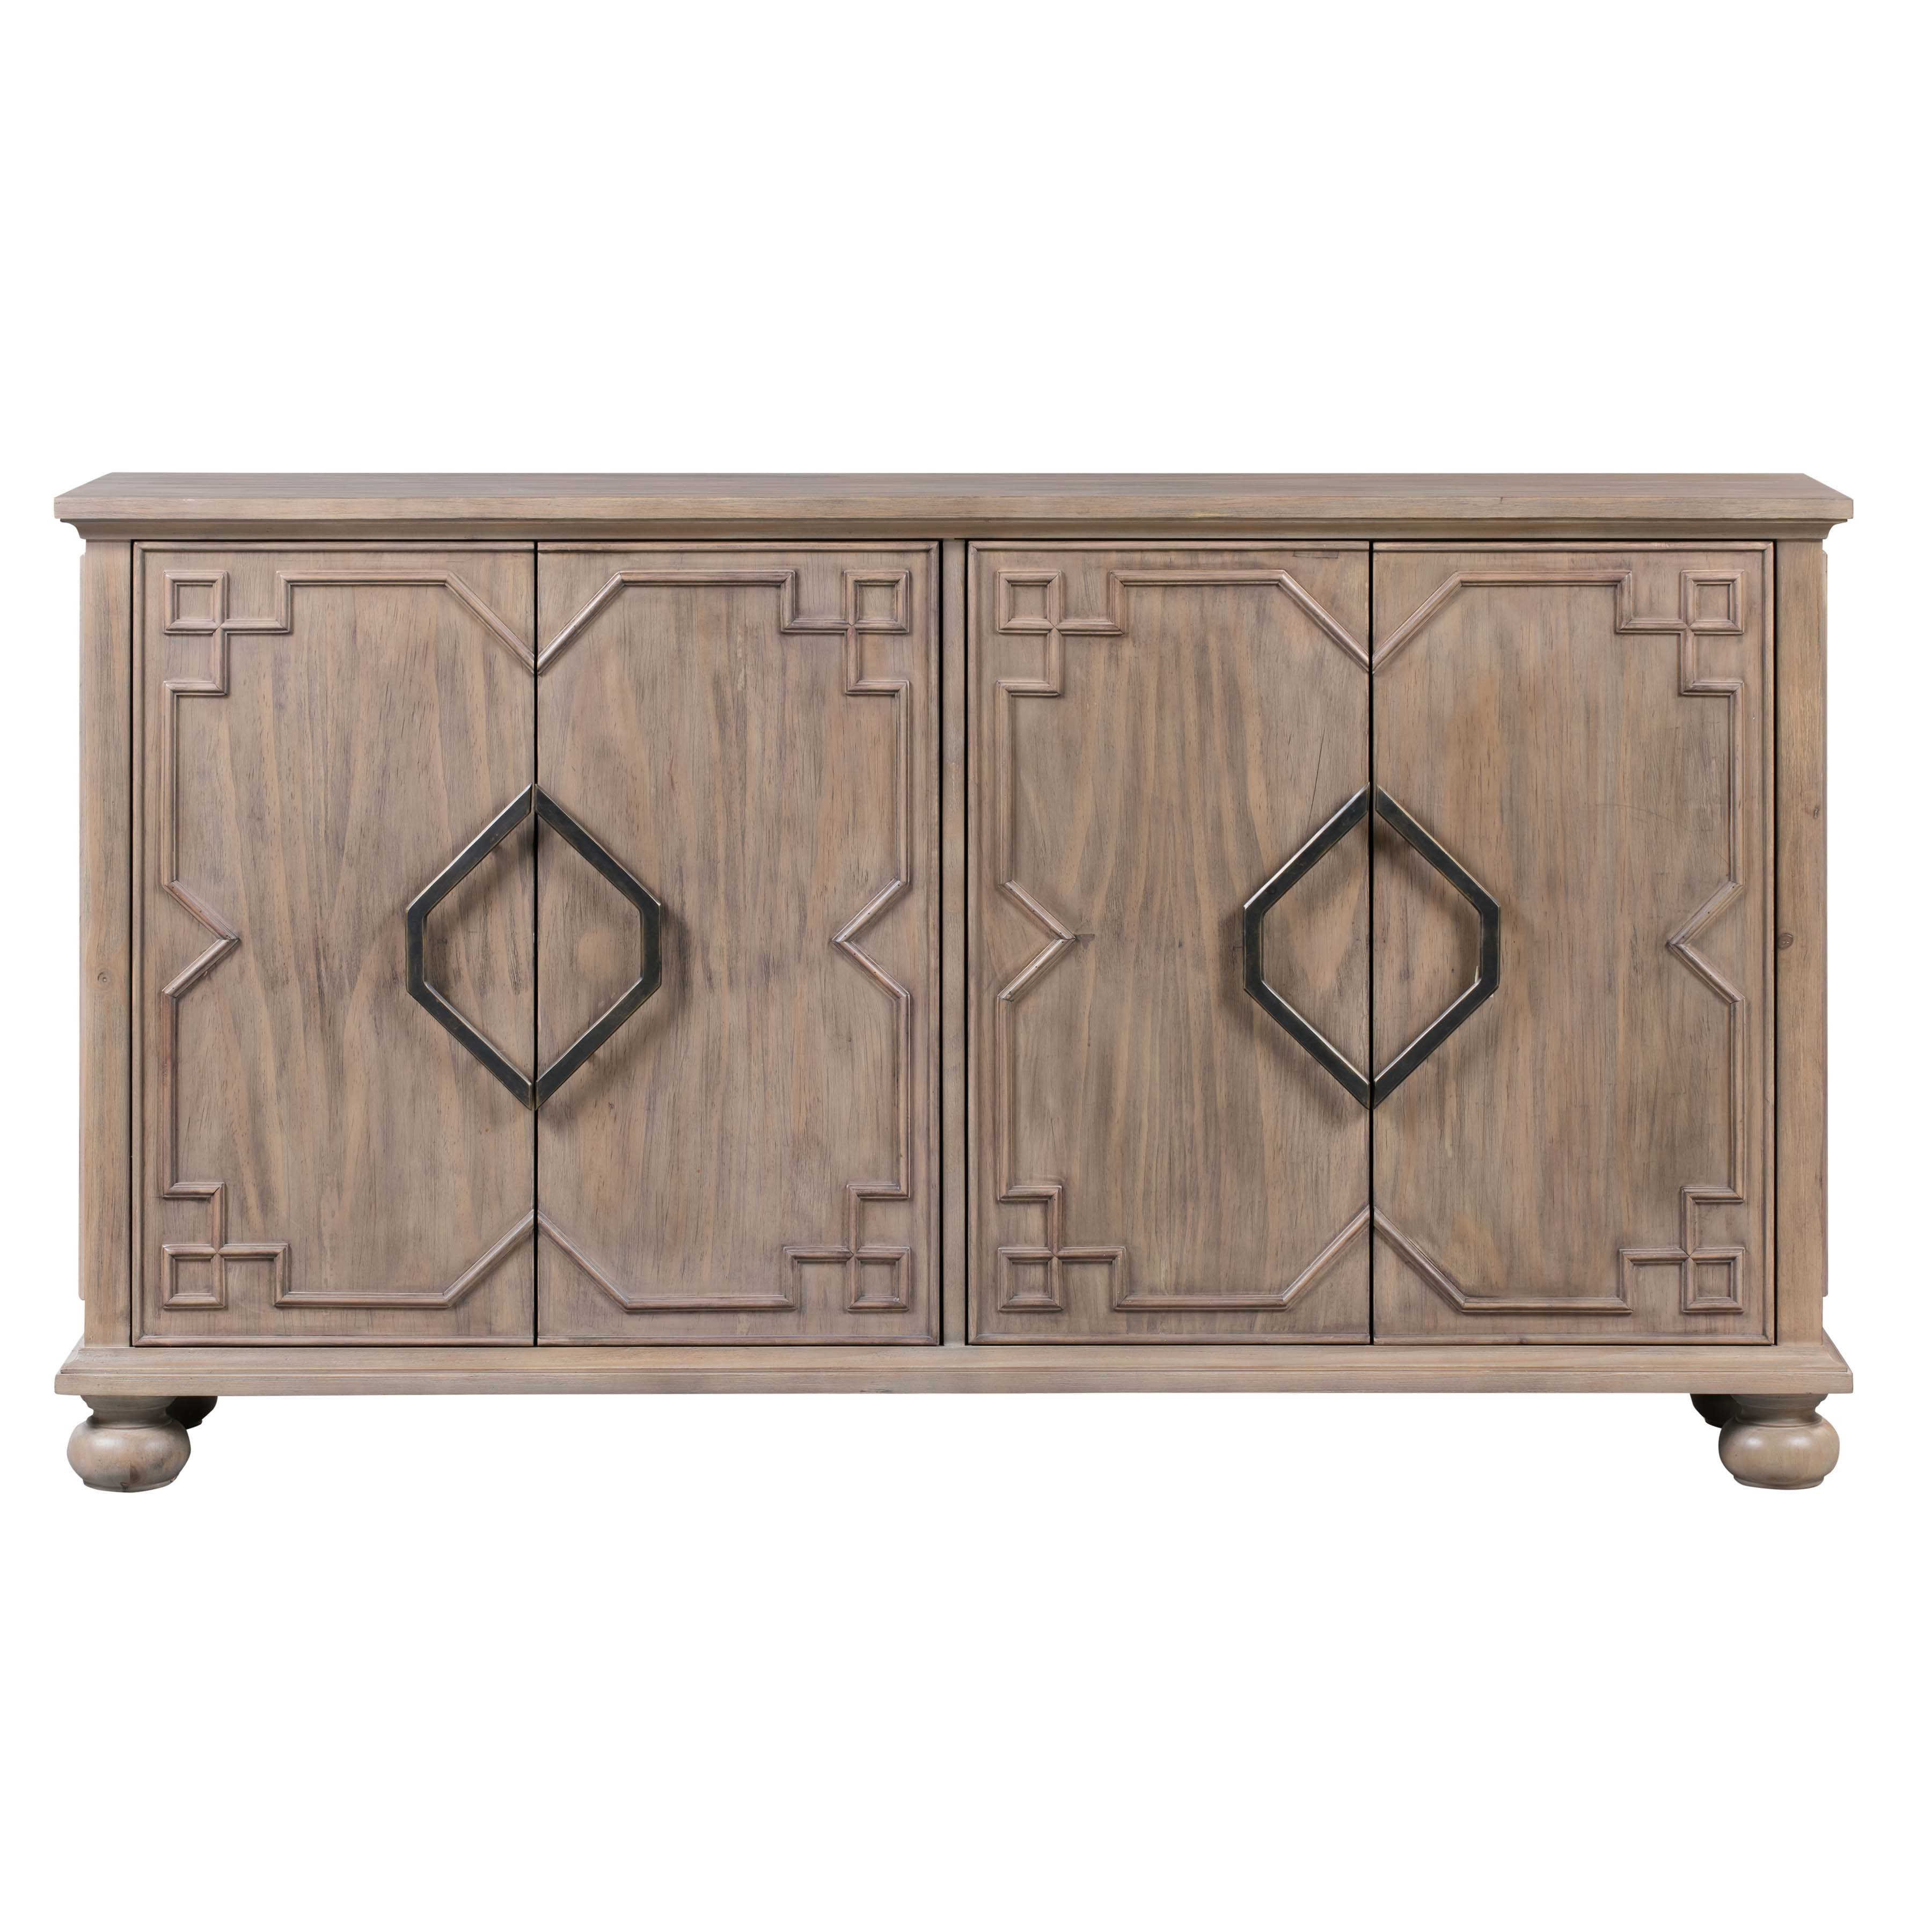 Sideboards & Credenzas | Joss & Main Inside Lainey Credenzas (View 10 of 20)